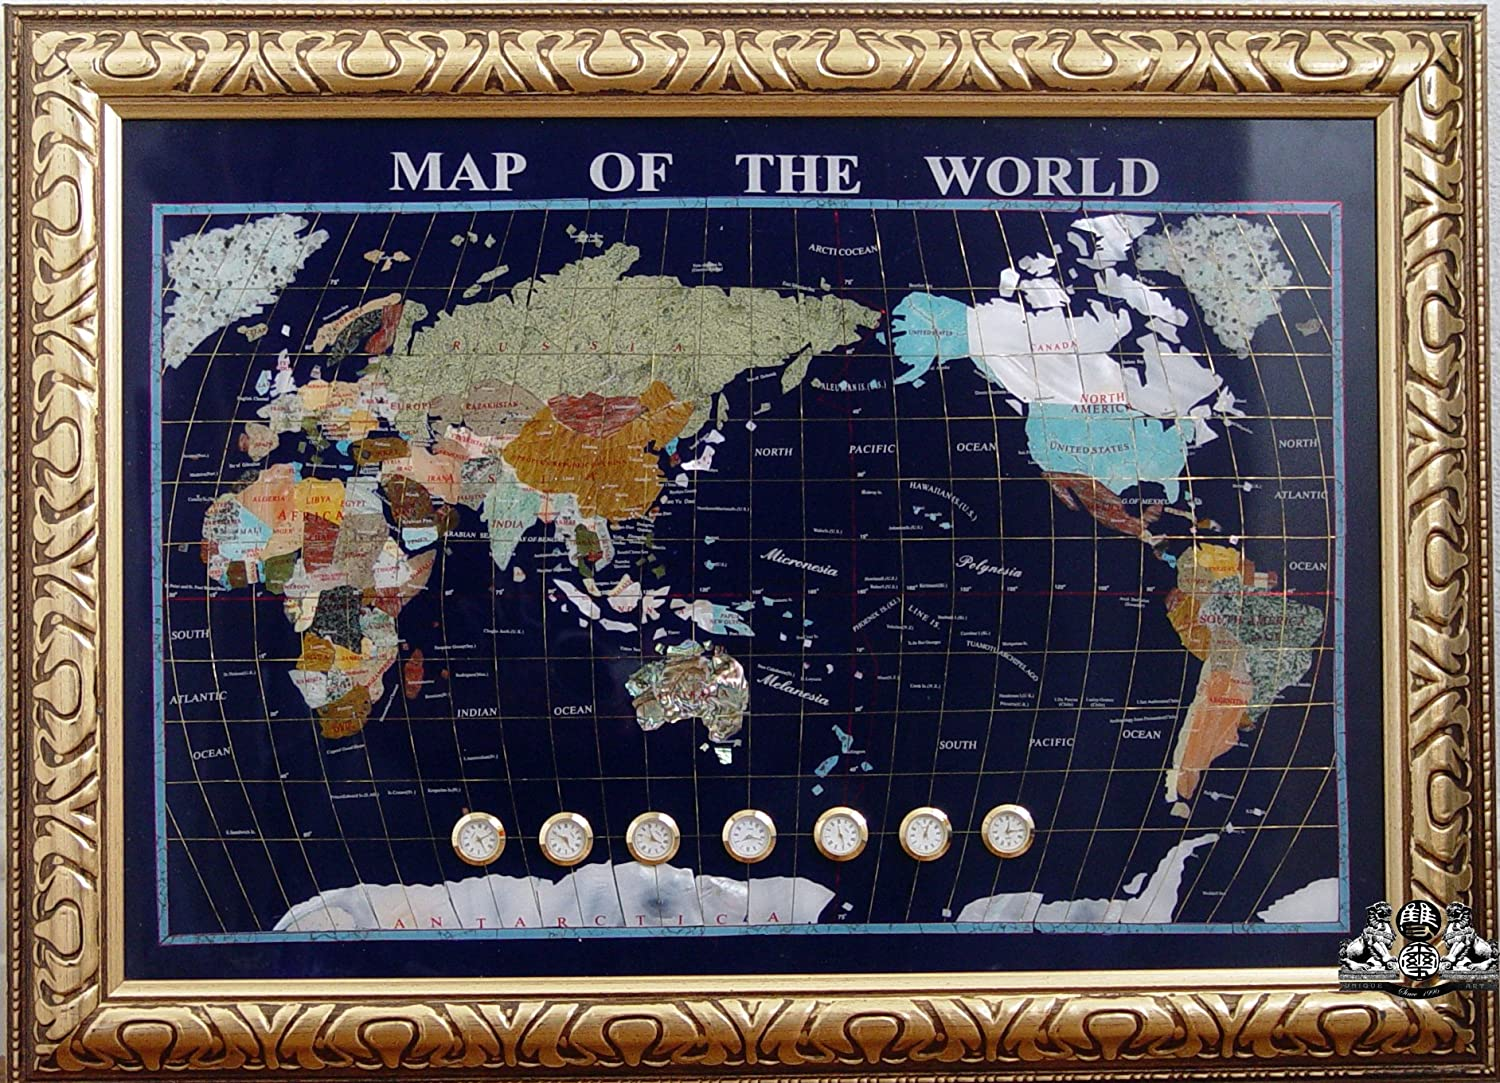 Unique Art 30-Inch Cross withWooden  Frame - Blue Lapis Ocean gemstone World Map with Watch Clocks